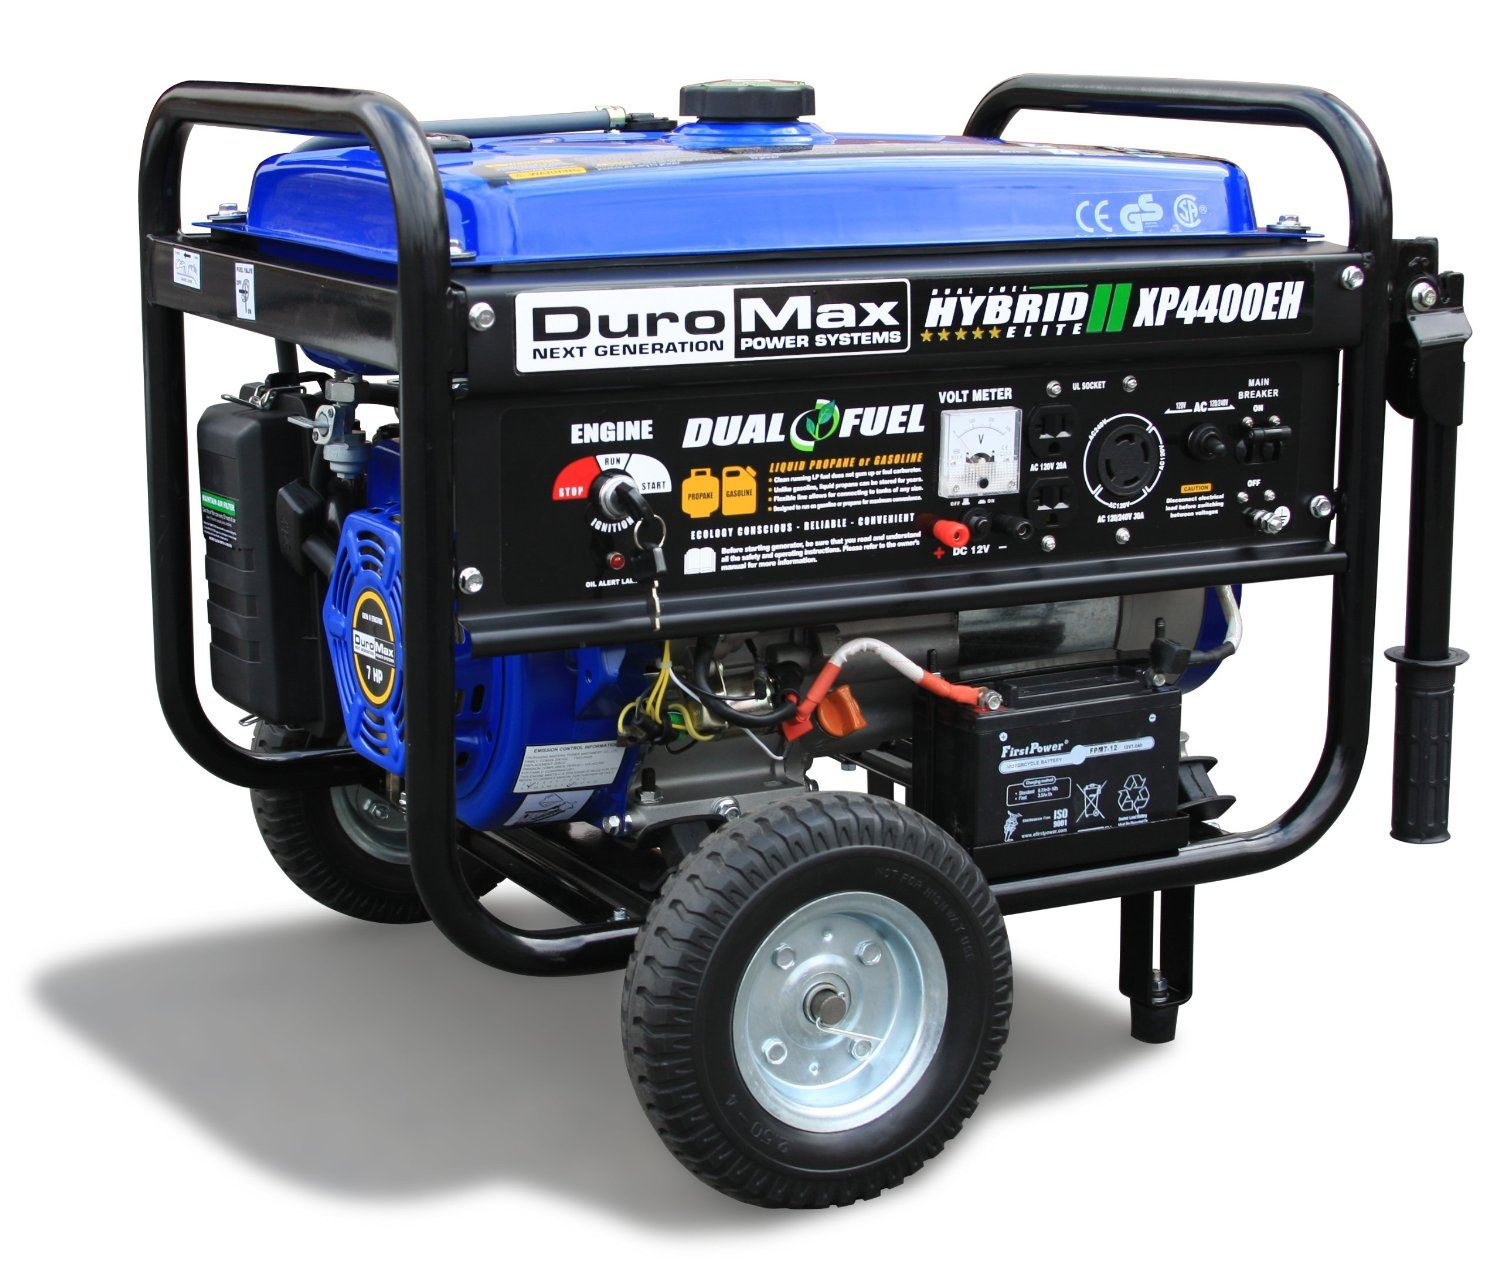 The DuroMax XP4400EH Dual Fuel Portable Generator Review